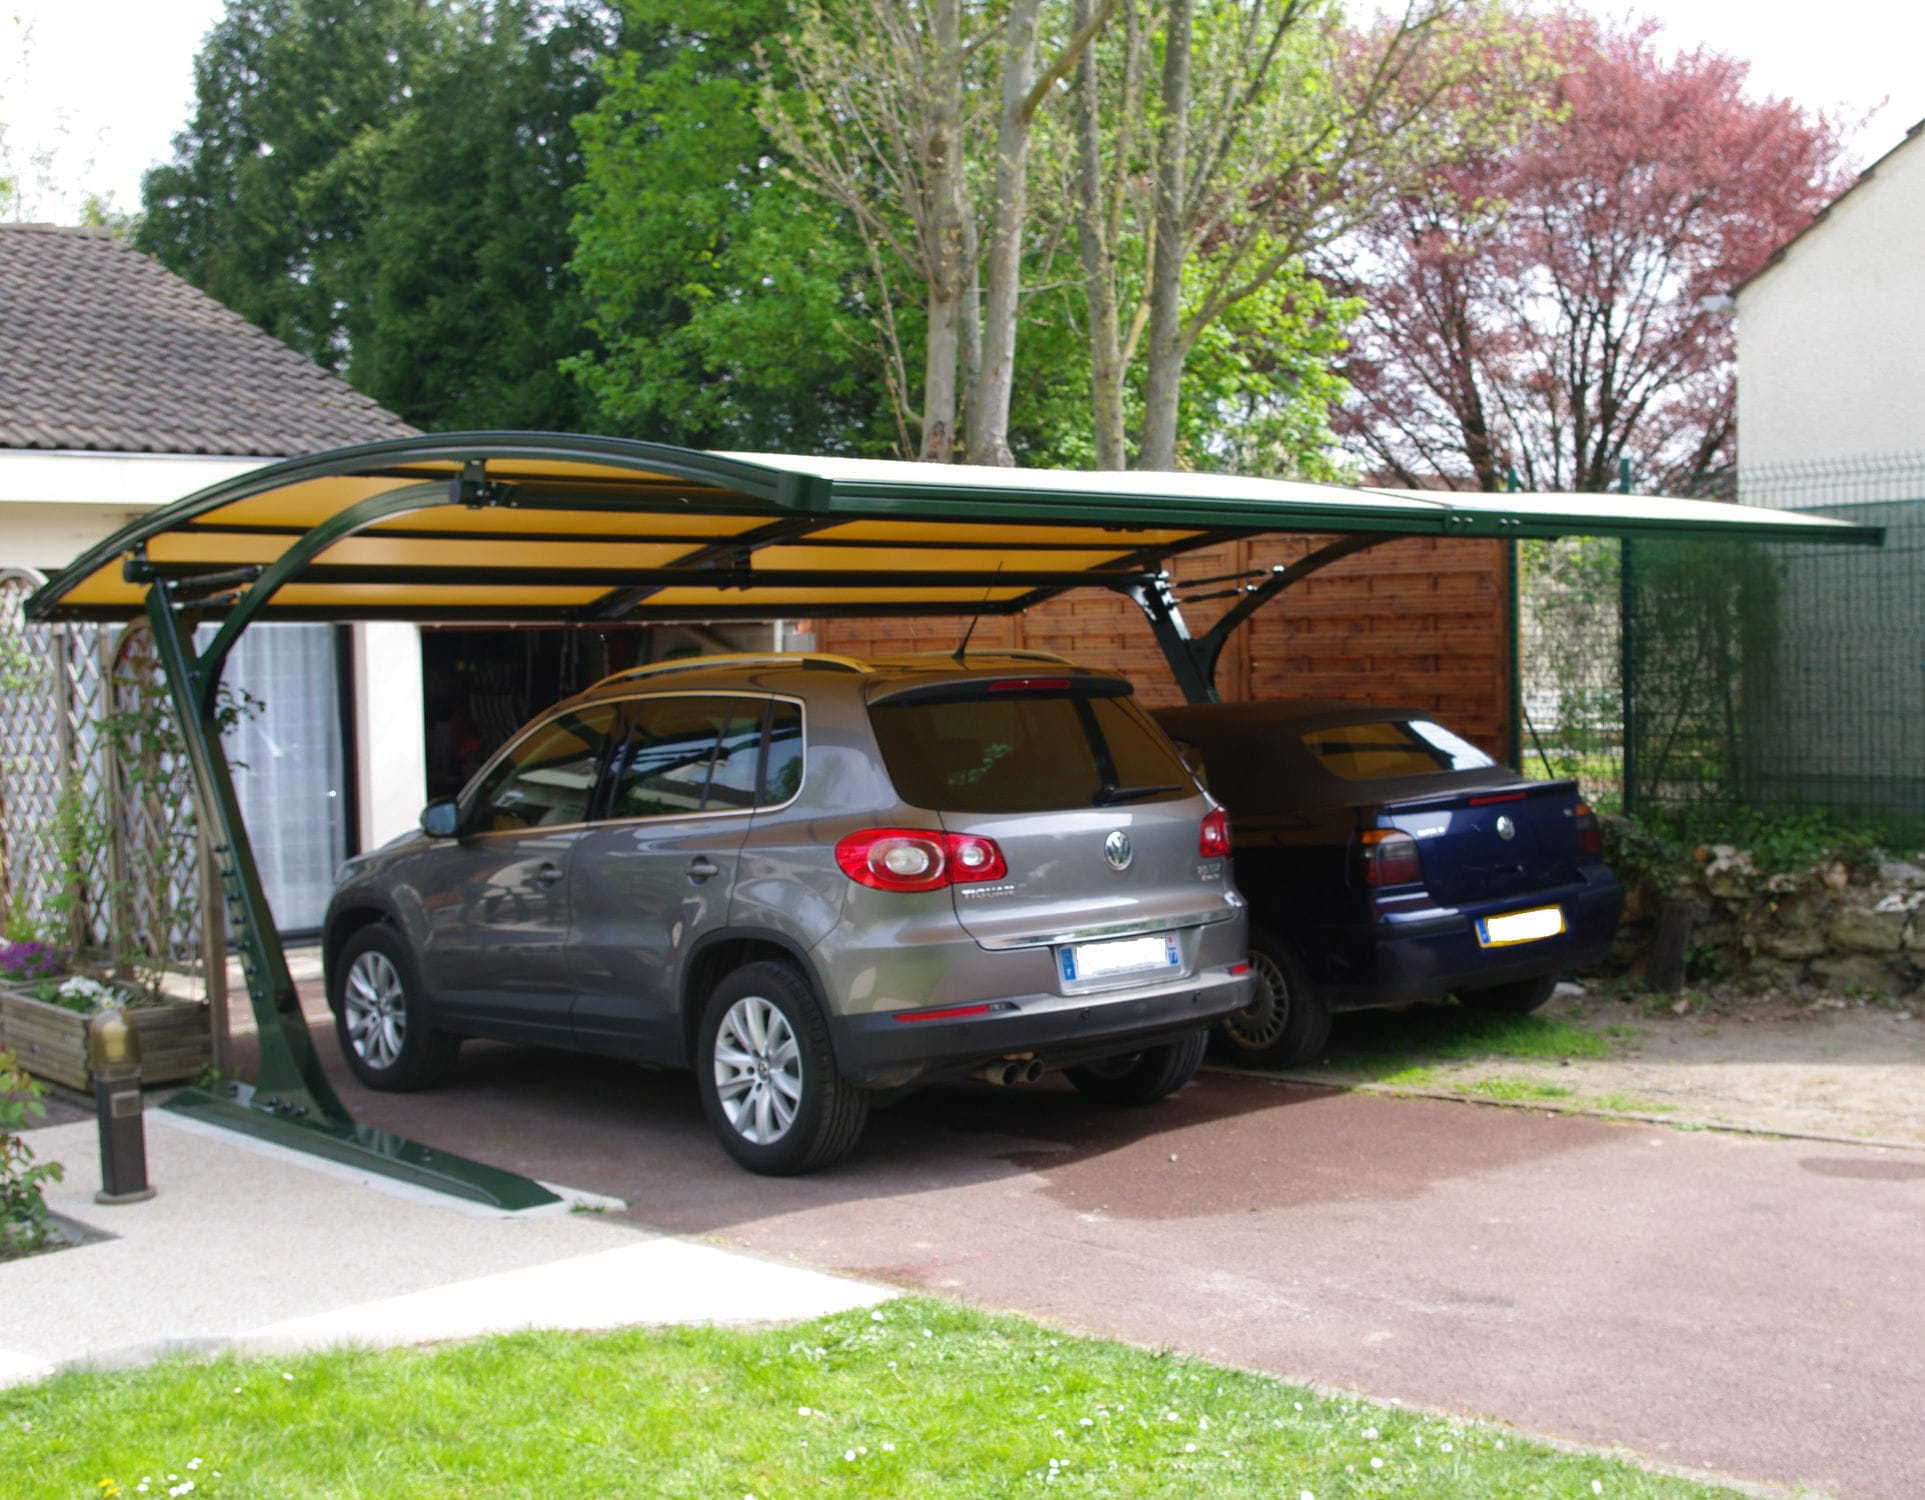 Karpot Steel Carport - St Barthe Ii Prestige - Covertou - Aluminum / Glass Fiber-reinforced Polyester / Pvc-coated